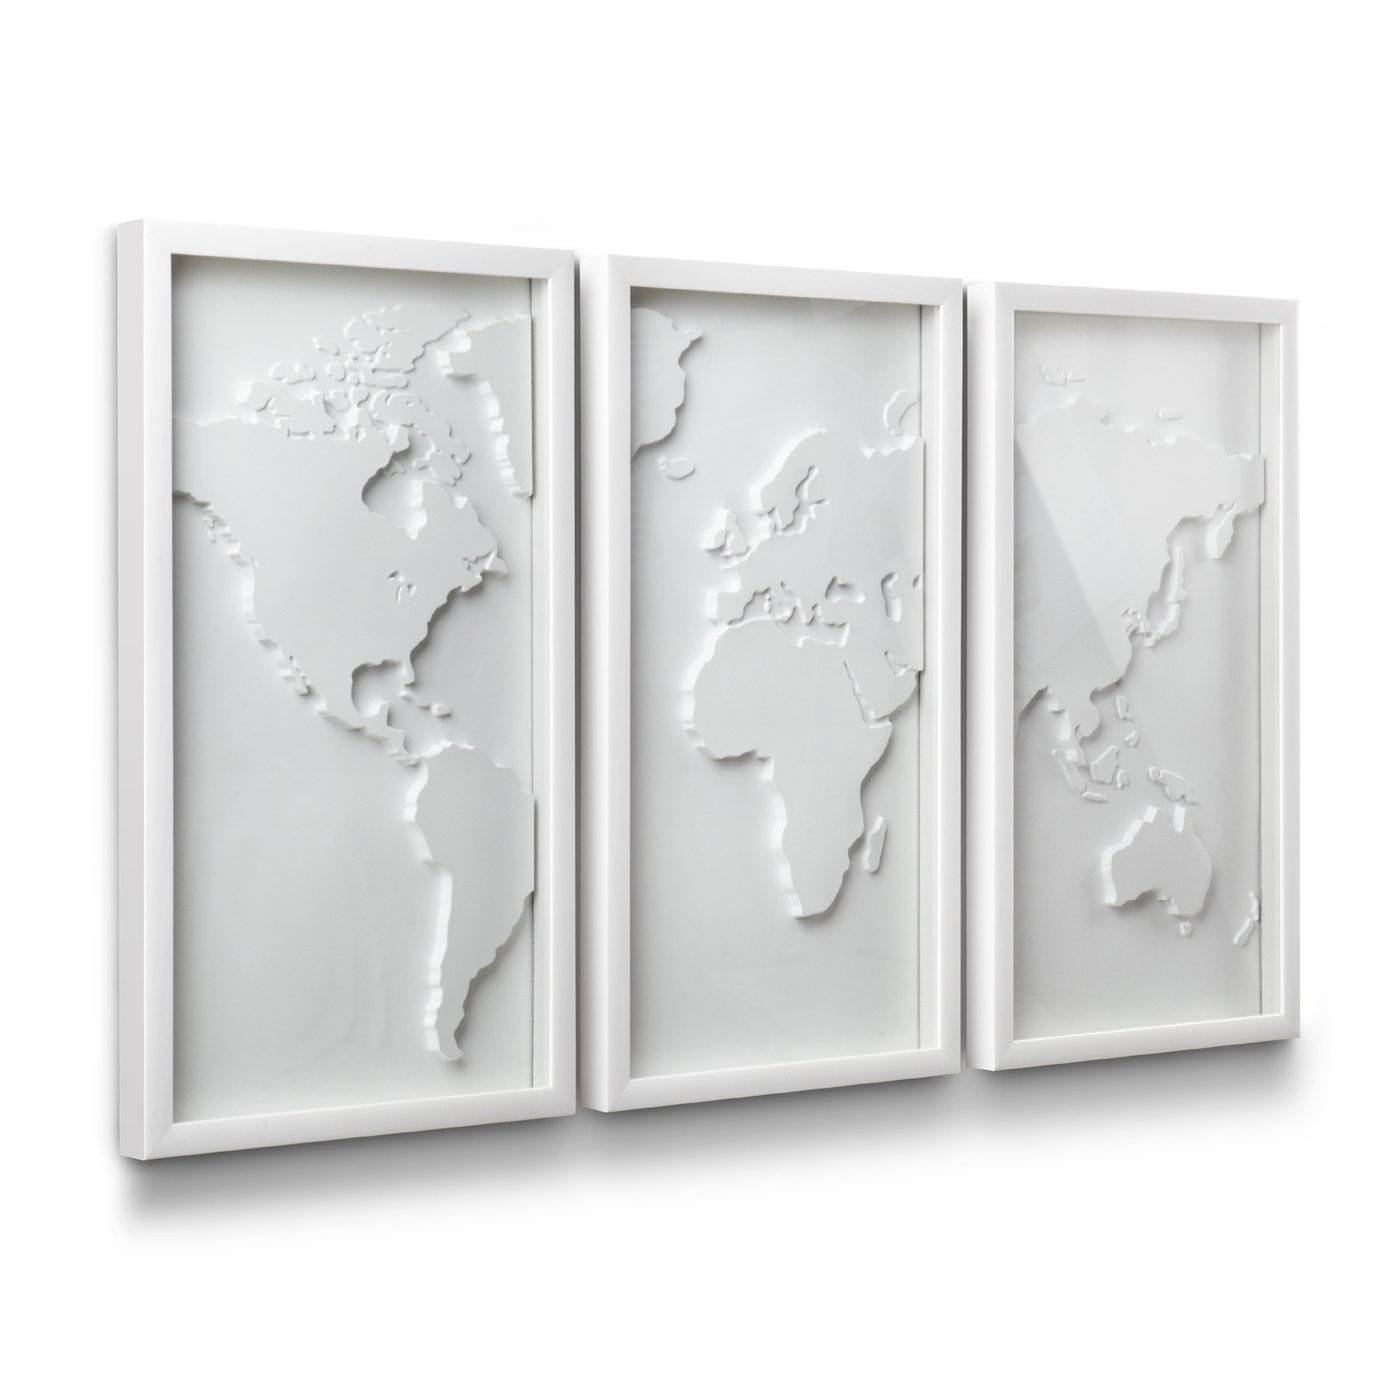 Umbra 470180 660 Mapster Wall Decor (set Of 3) | Lowe's Canada Intended For Current Umbra 3d Wall Art (View 2 of 20)